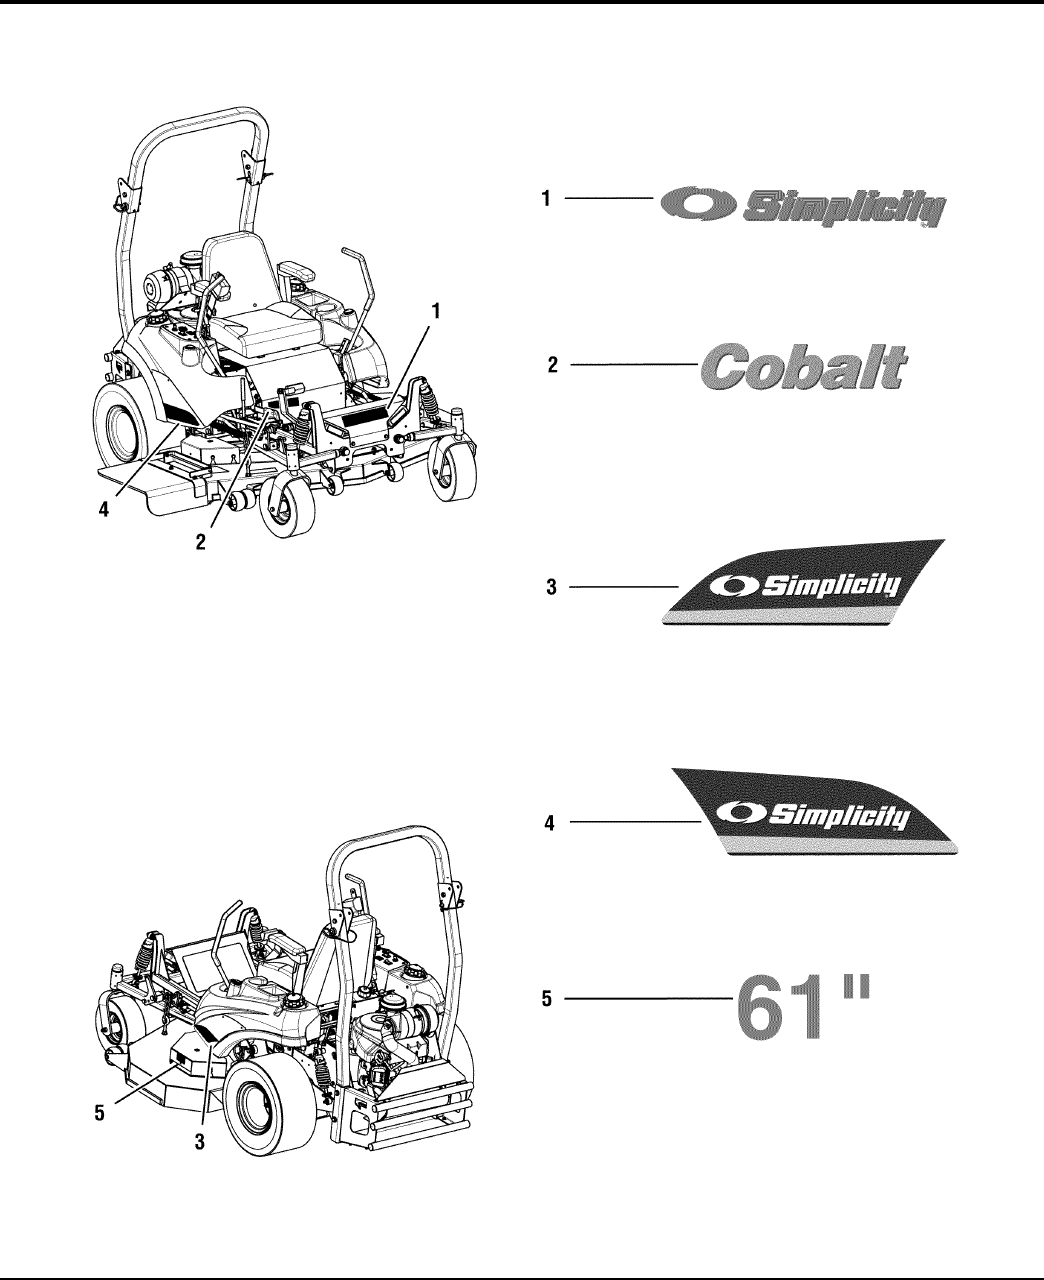 Page 48 of Simplicity Lawn Mower 2690479 User Guide